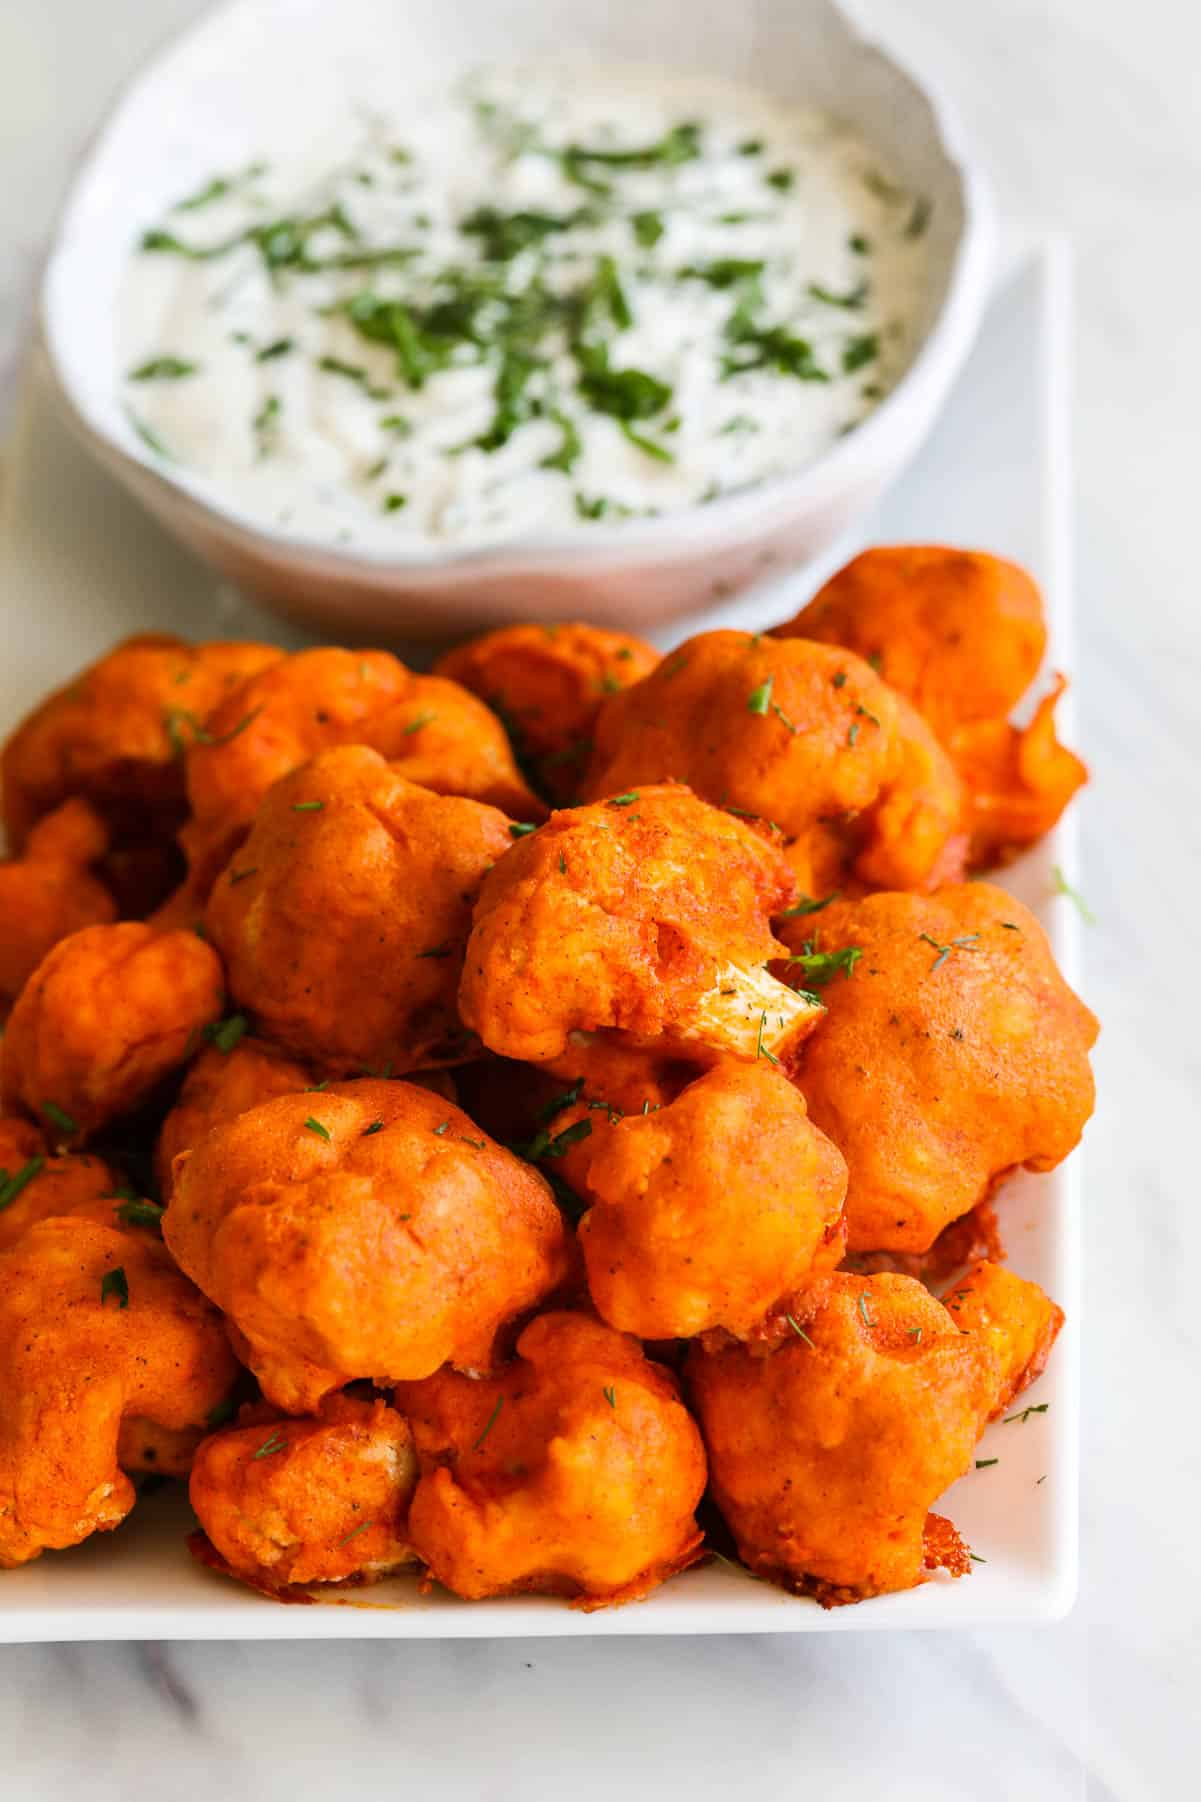 A pile of baked Buffalo Cauliflower on a plate with ranch dip sprinkled with fresh herbs.